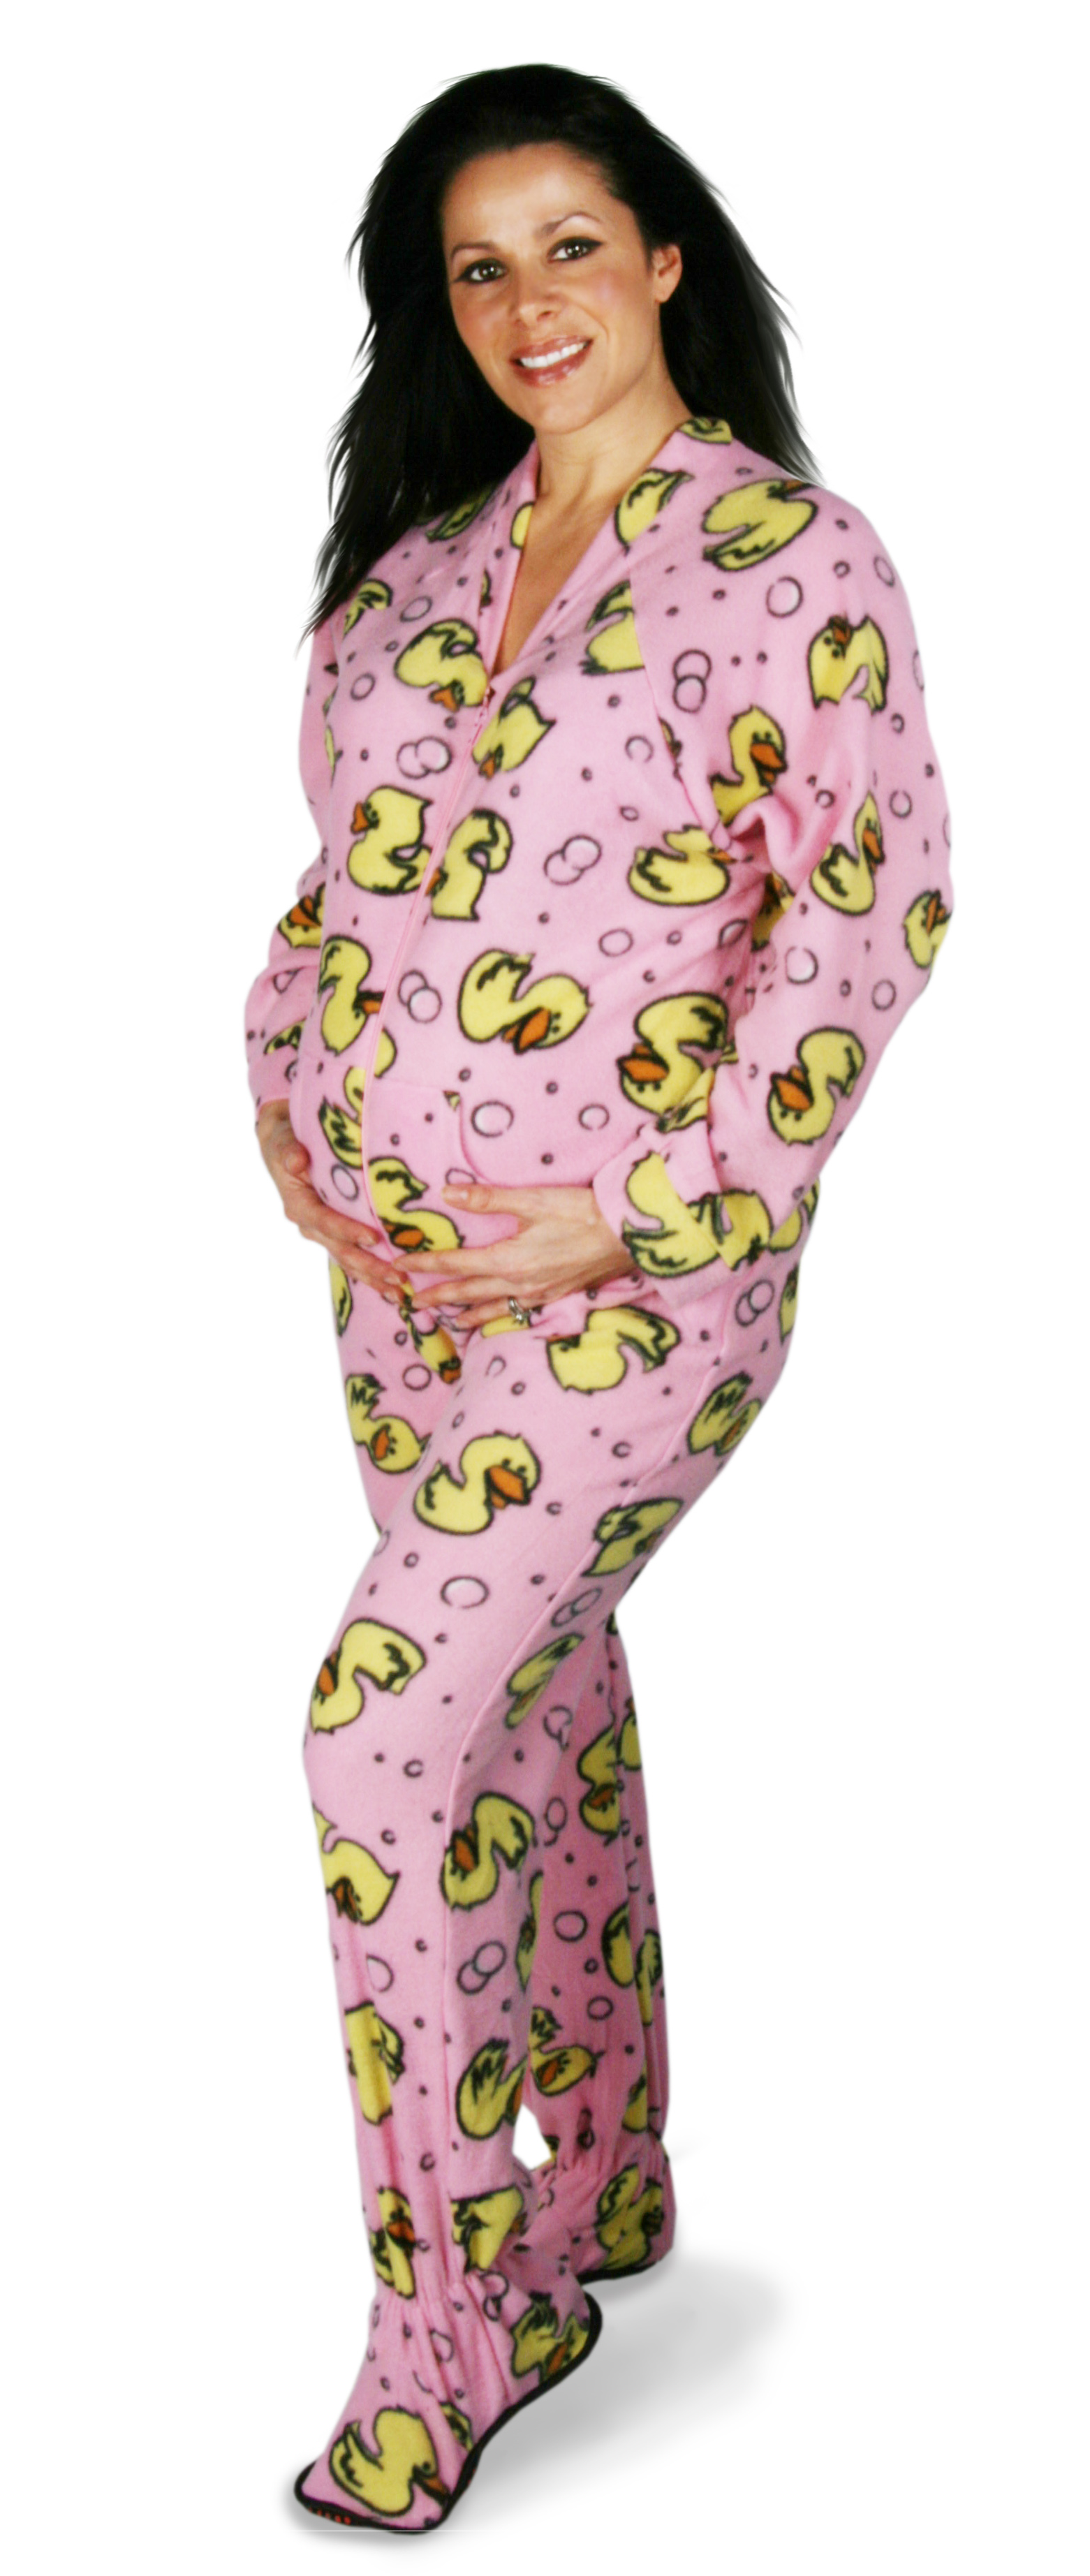 Footie Pajamas. Get ready for the coziest, comfiest PJs of them all. We've got footed pajamas for fun sleep gear for the whole family—from tiny tots to adults! Bedtime Jammies Keep the littlest ones in the family warm and comfortable in the chill of the colder months.